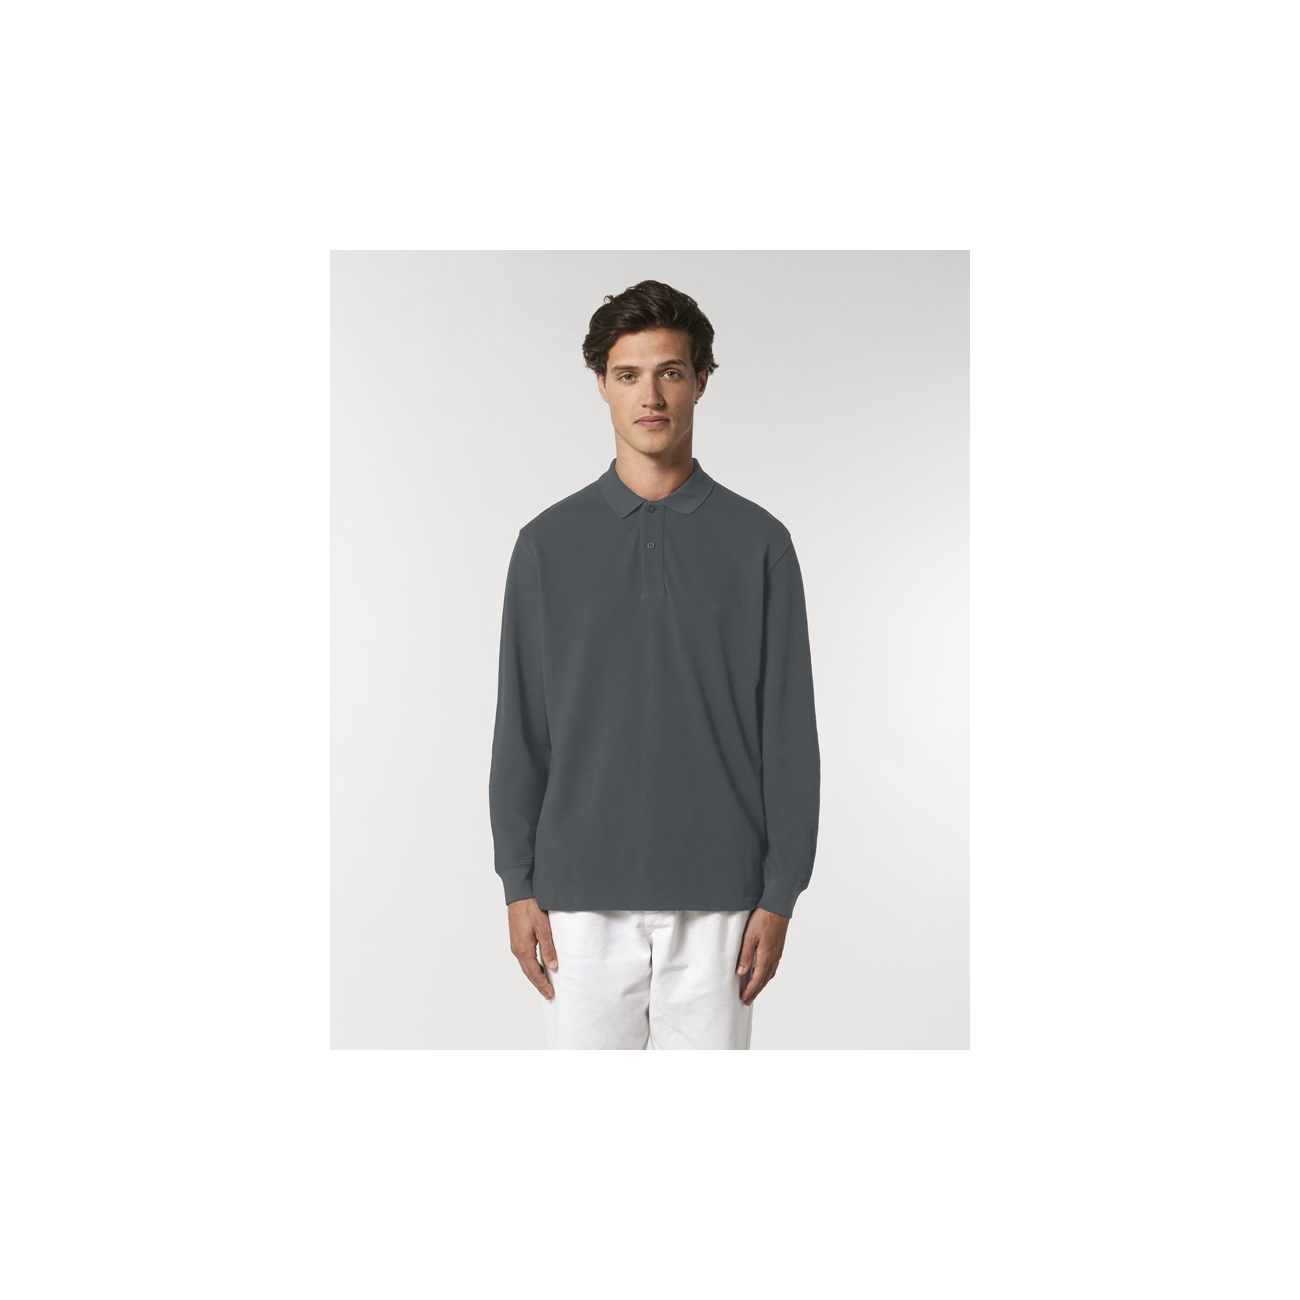 https://tee-shirt-bio.com/9786-thickbox_default/polo-coton-pique-manches-longues-gris-anthracite.jpg